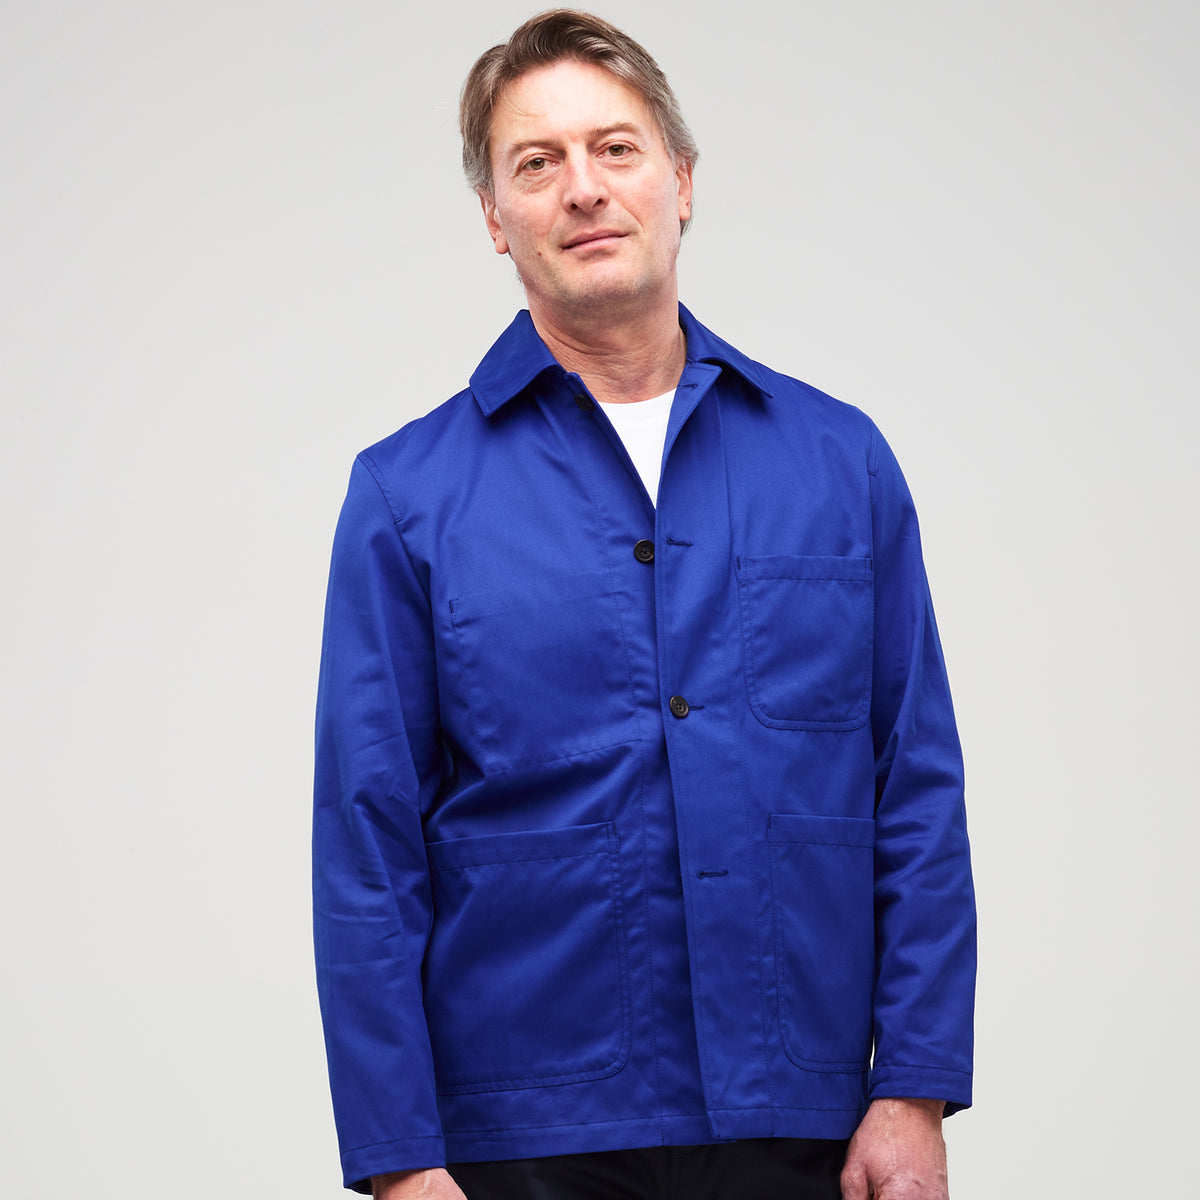 Men's Chore Jacket Royal Blue - Community Clothing